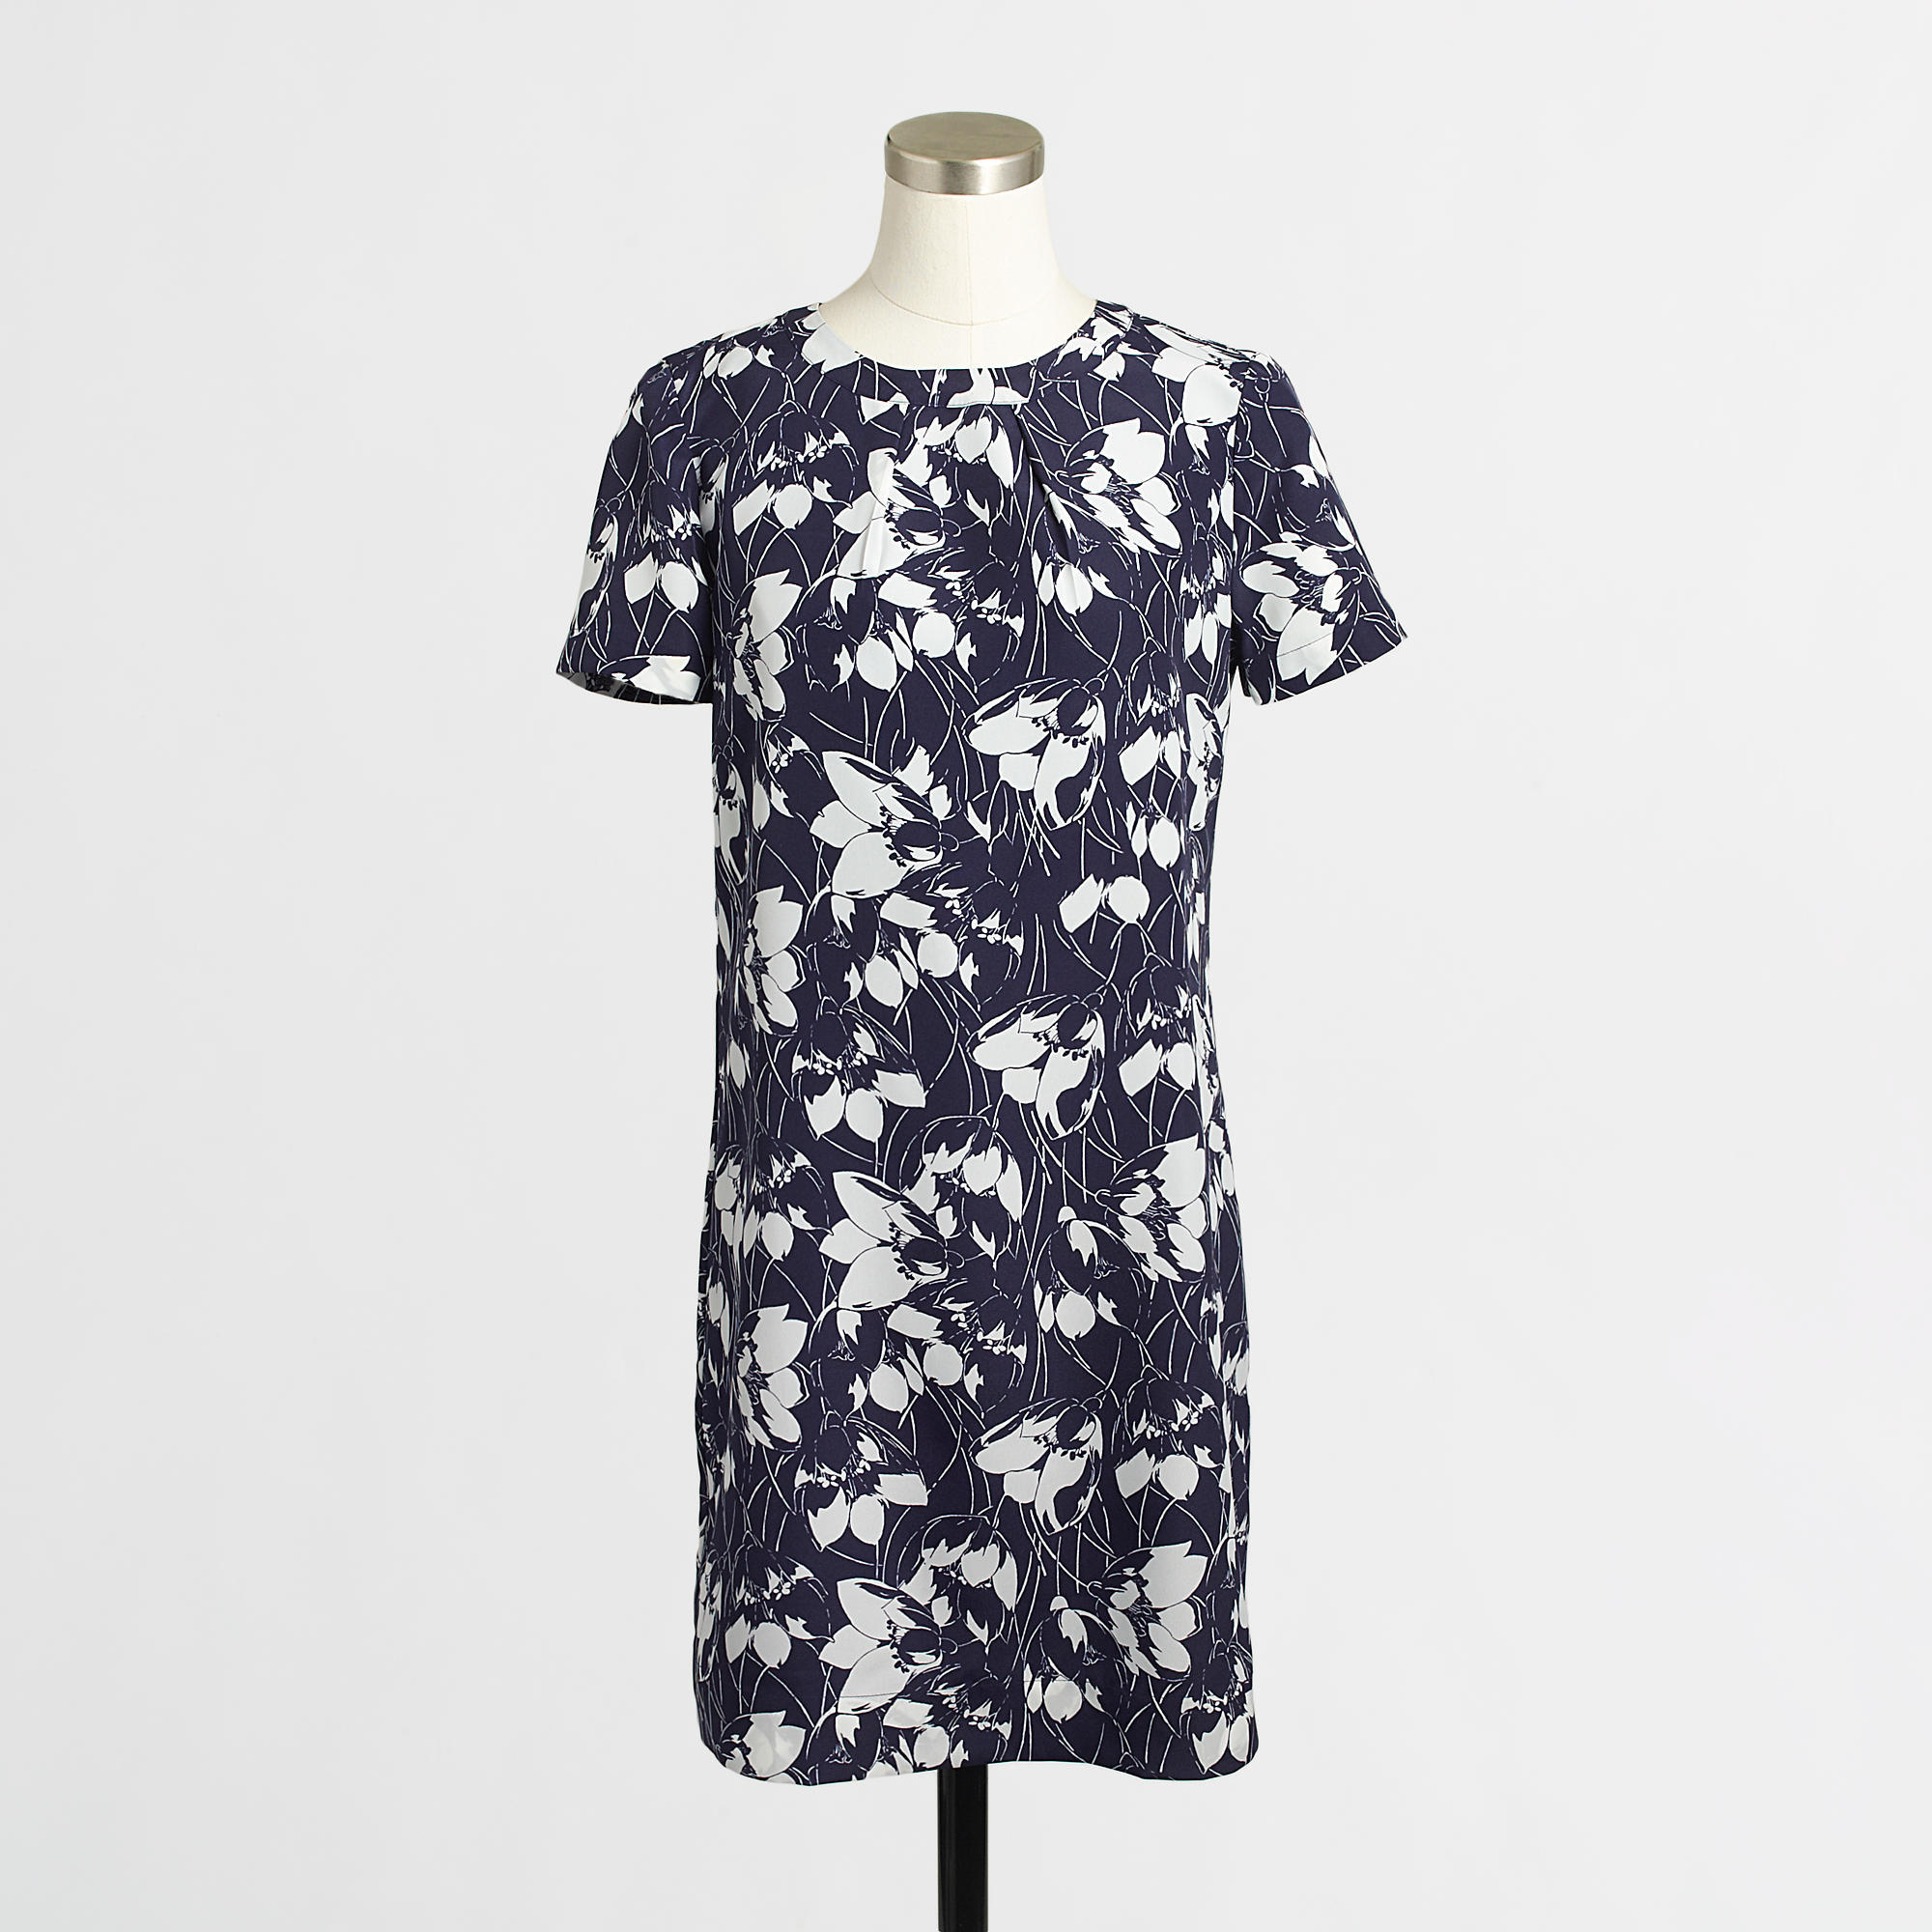 40% Off Women's Skirts and Dresses @ J.Crew Factory